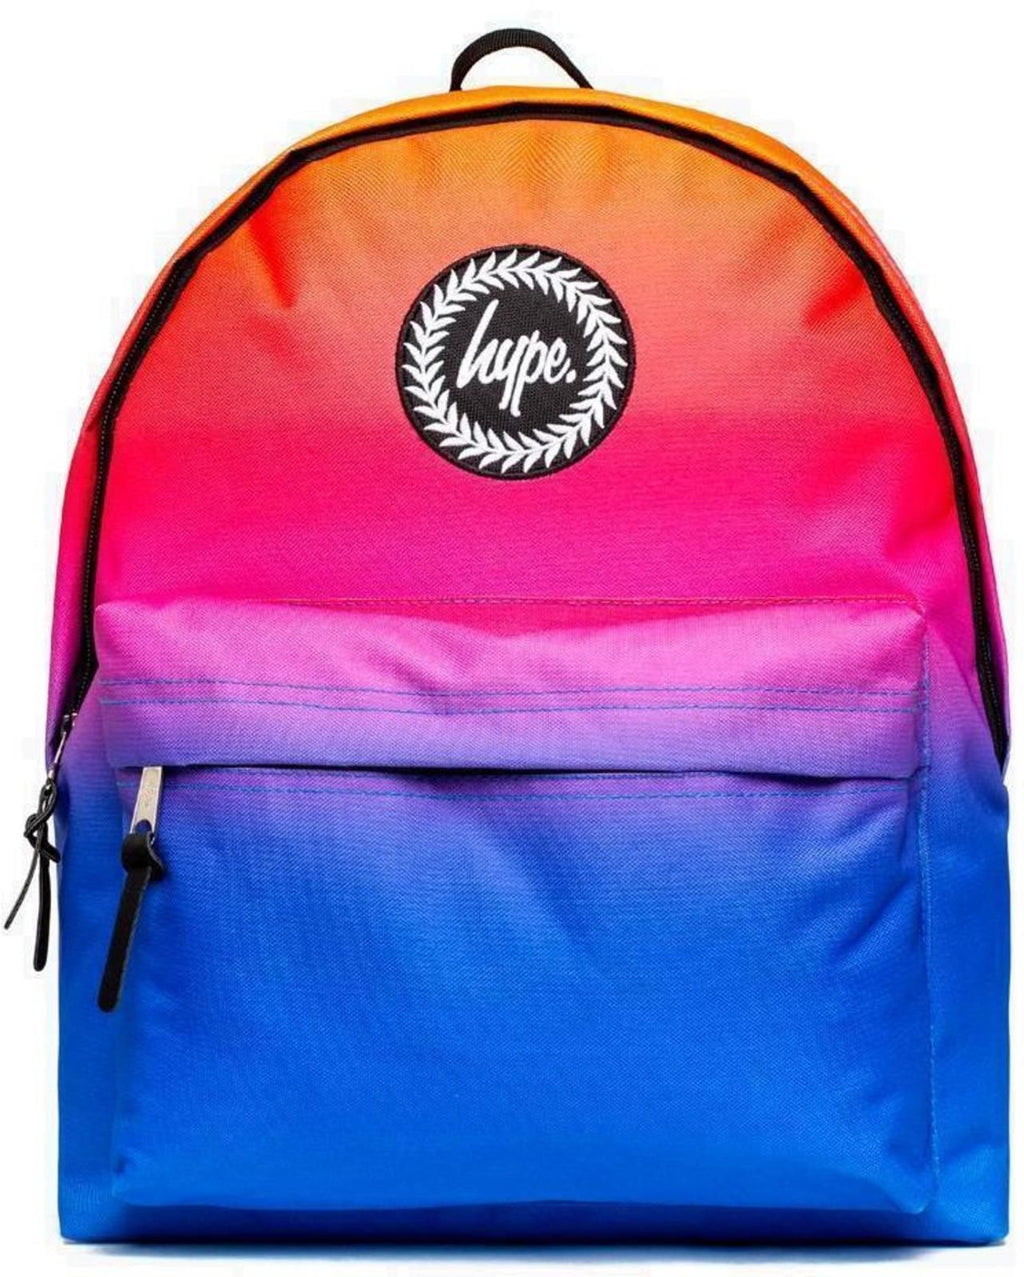 Hype Hi-Fi Fade Backpack Bag Multi